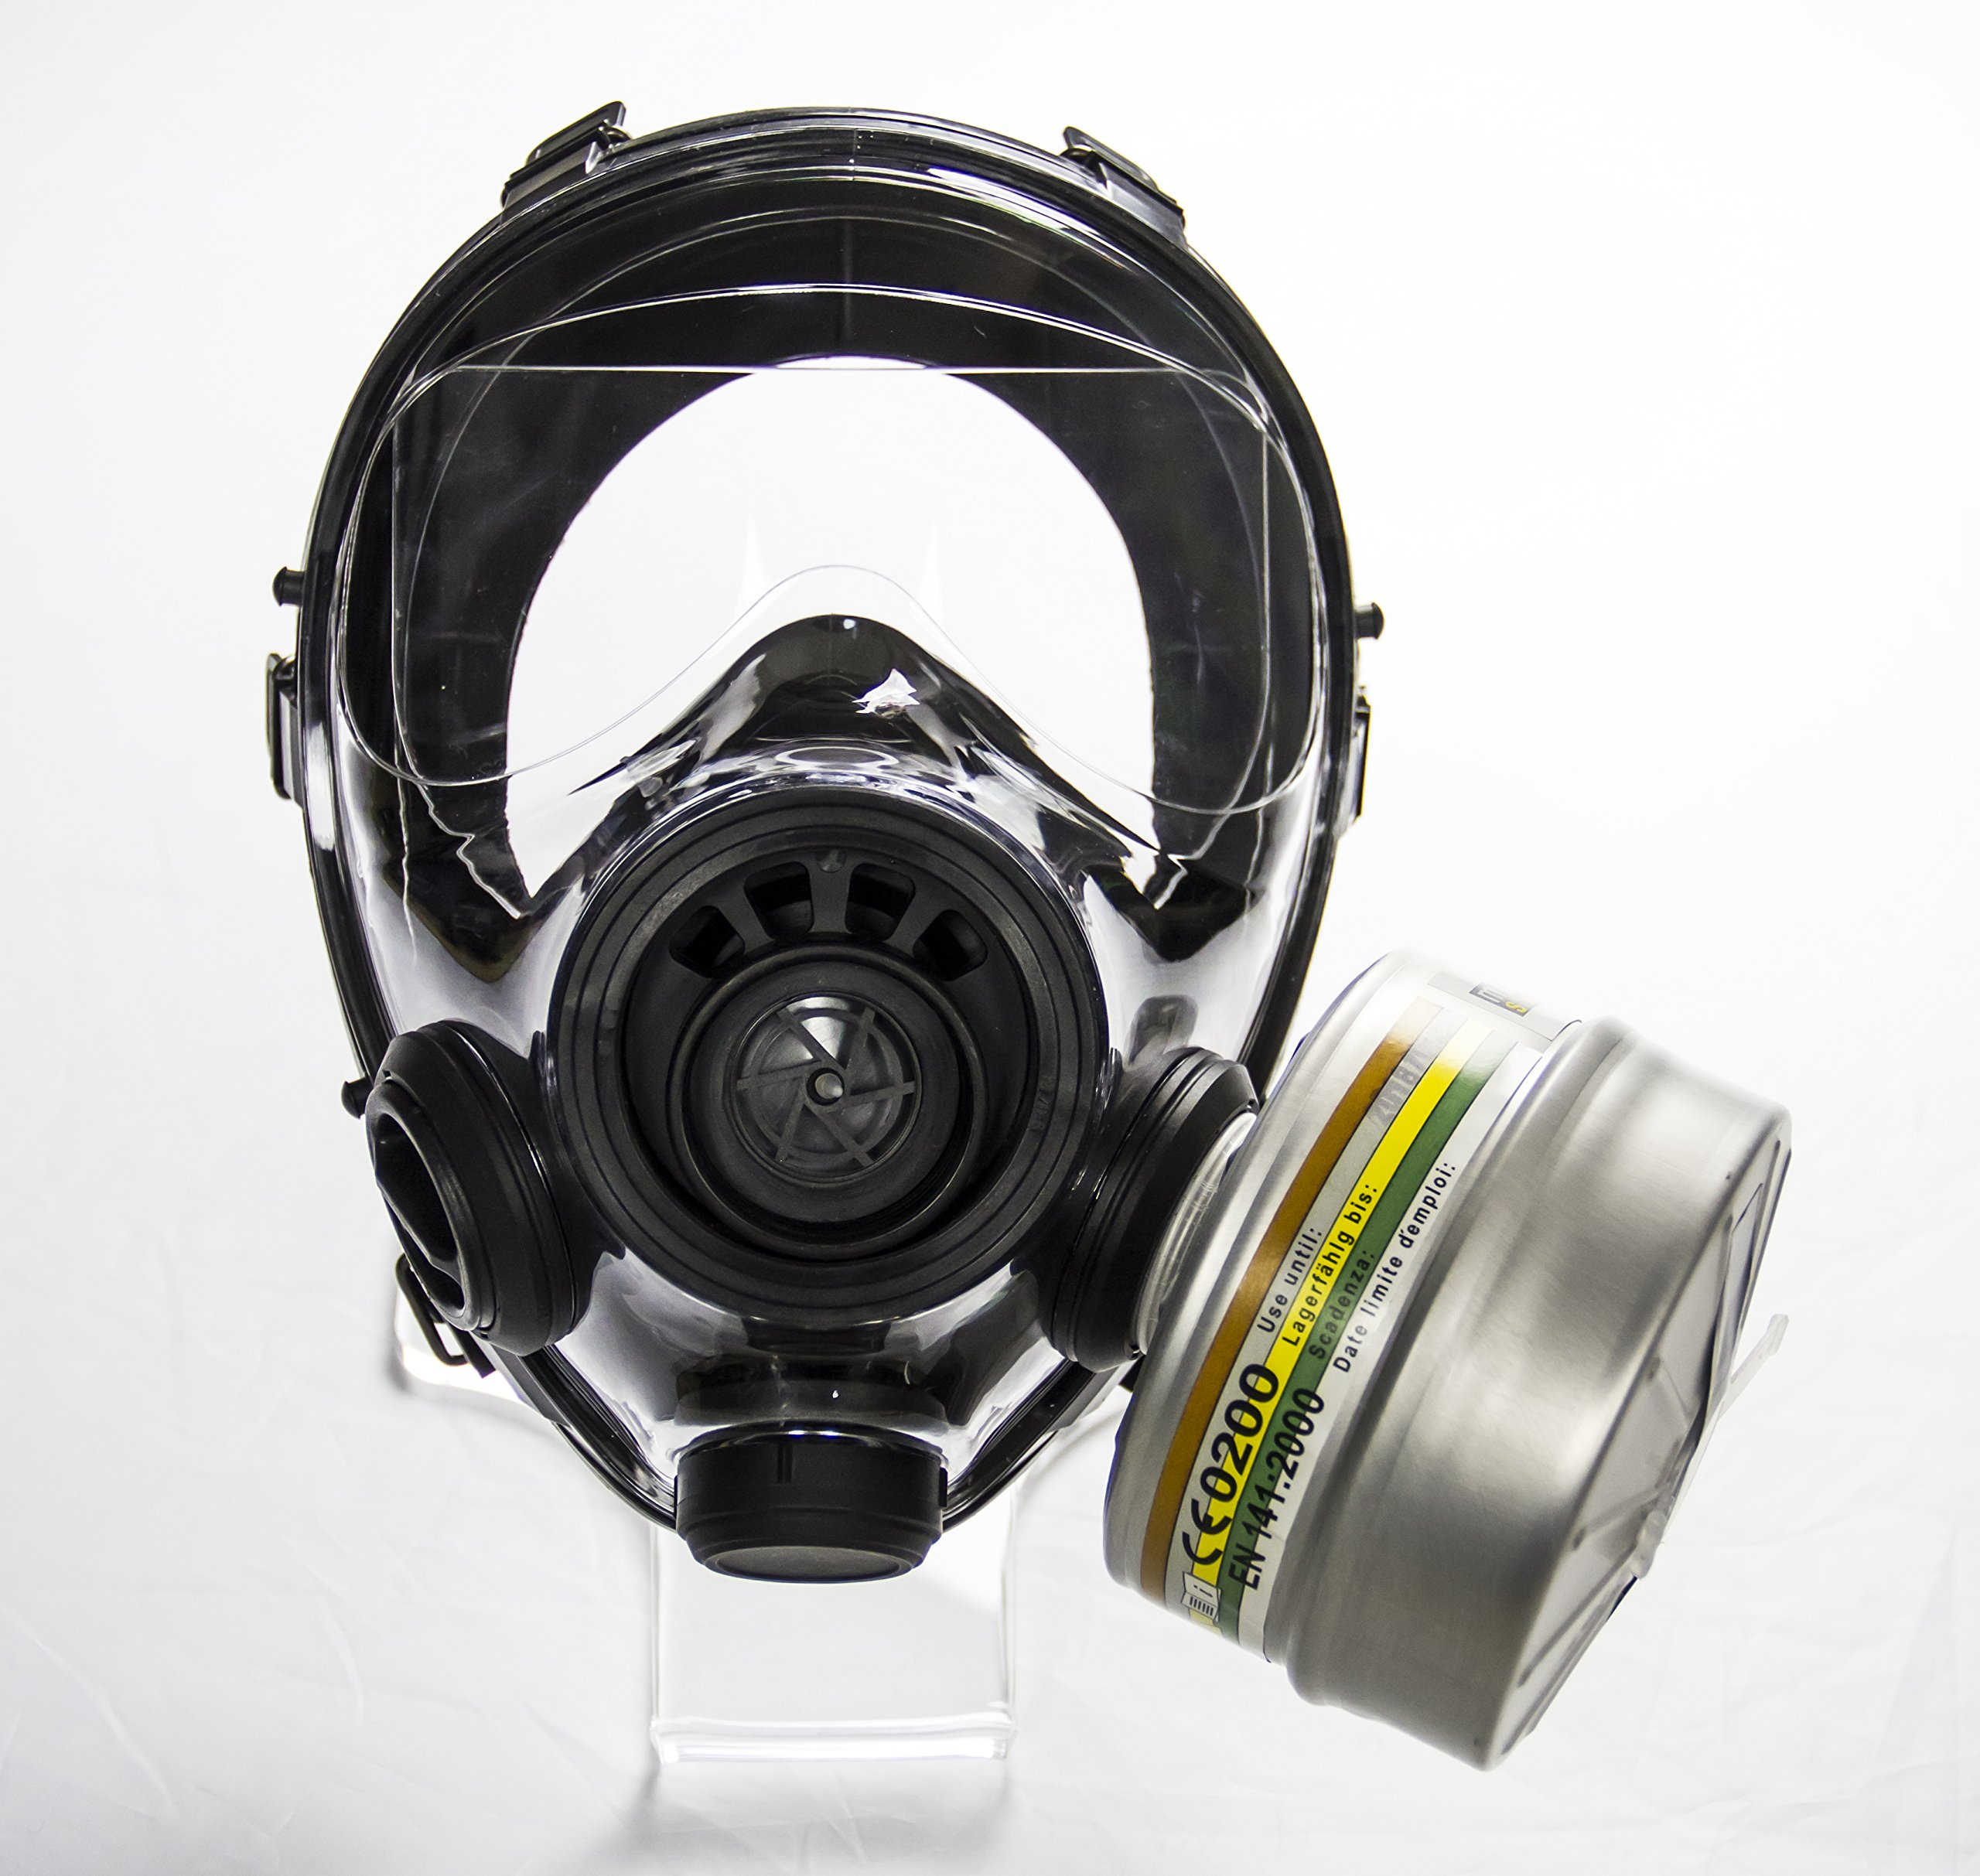 Mestel Safety - Full-face Gas Mask, Anti-Gas Respirator Mask - Resistant to Chemical Agents and Aggressive Toxic Substances - Suitable for Pesticide and Chemical Protection - SGE 400/3 S/M by Mestel Safety (Image #5)